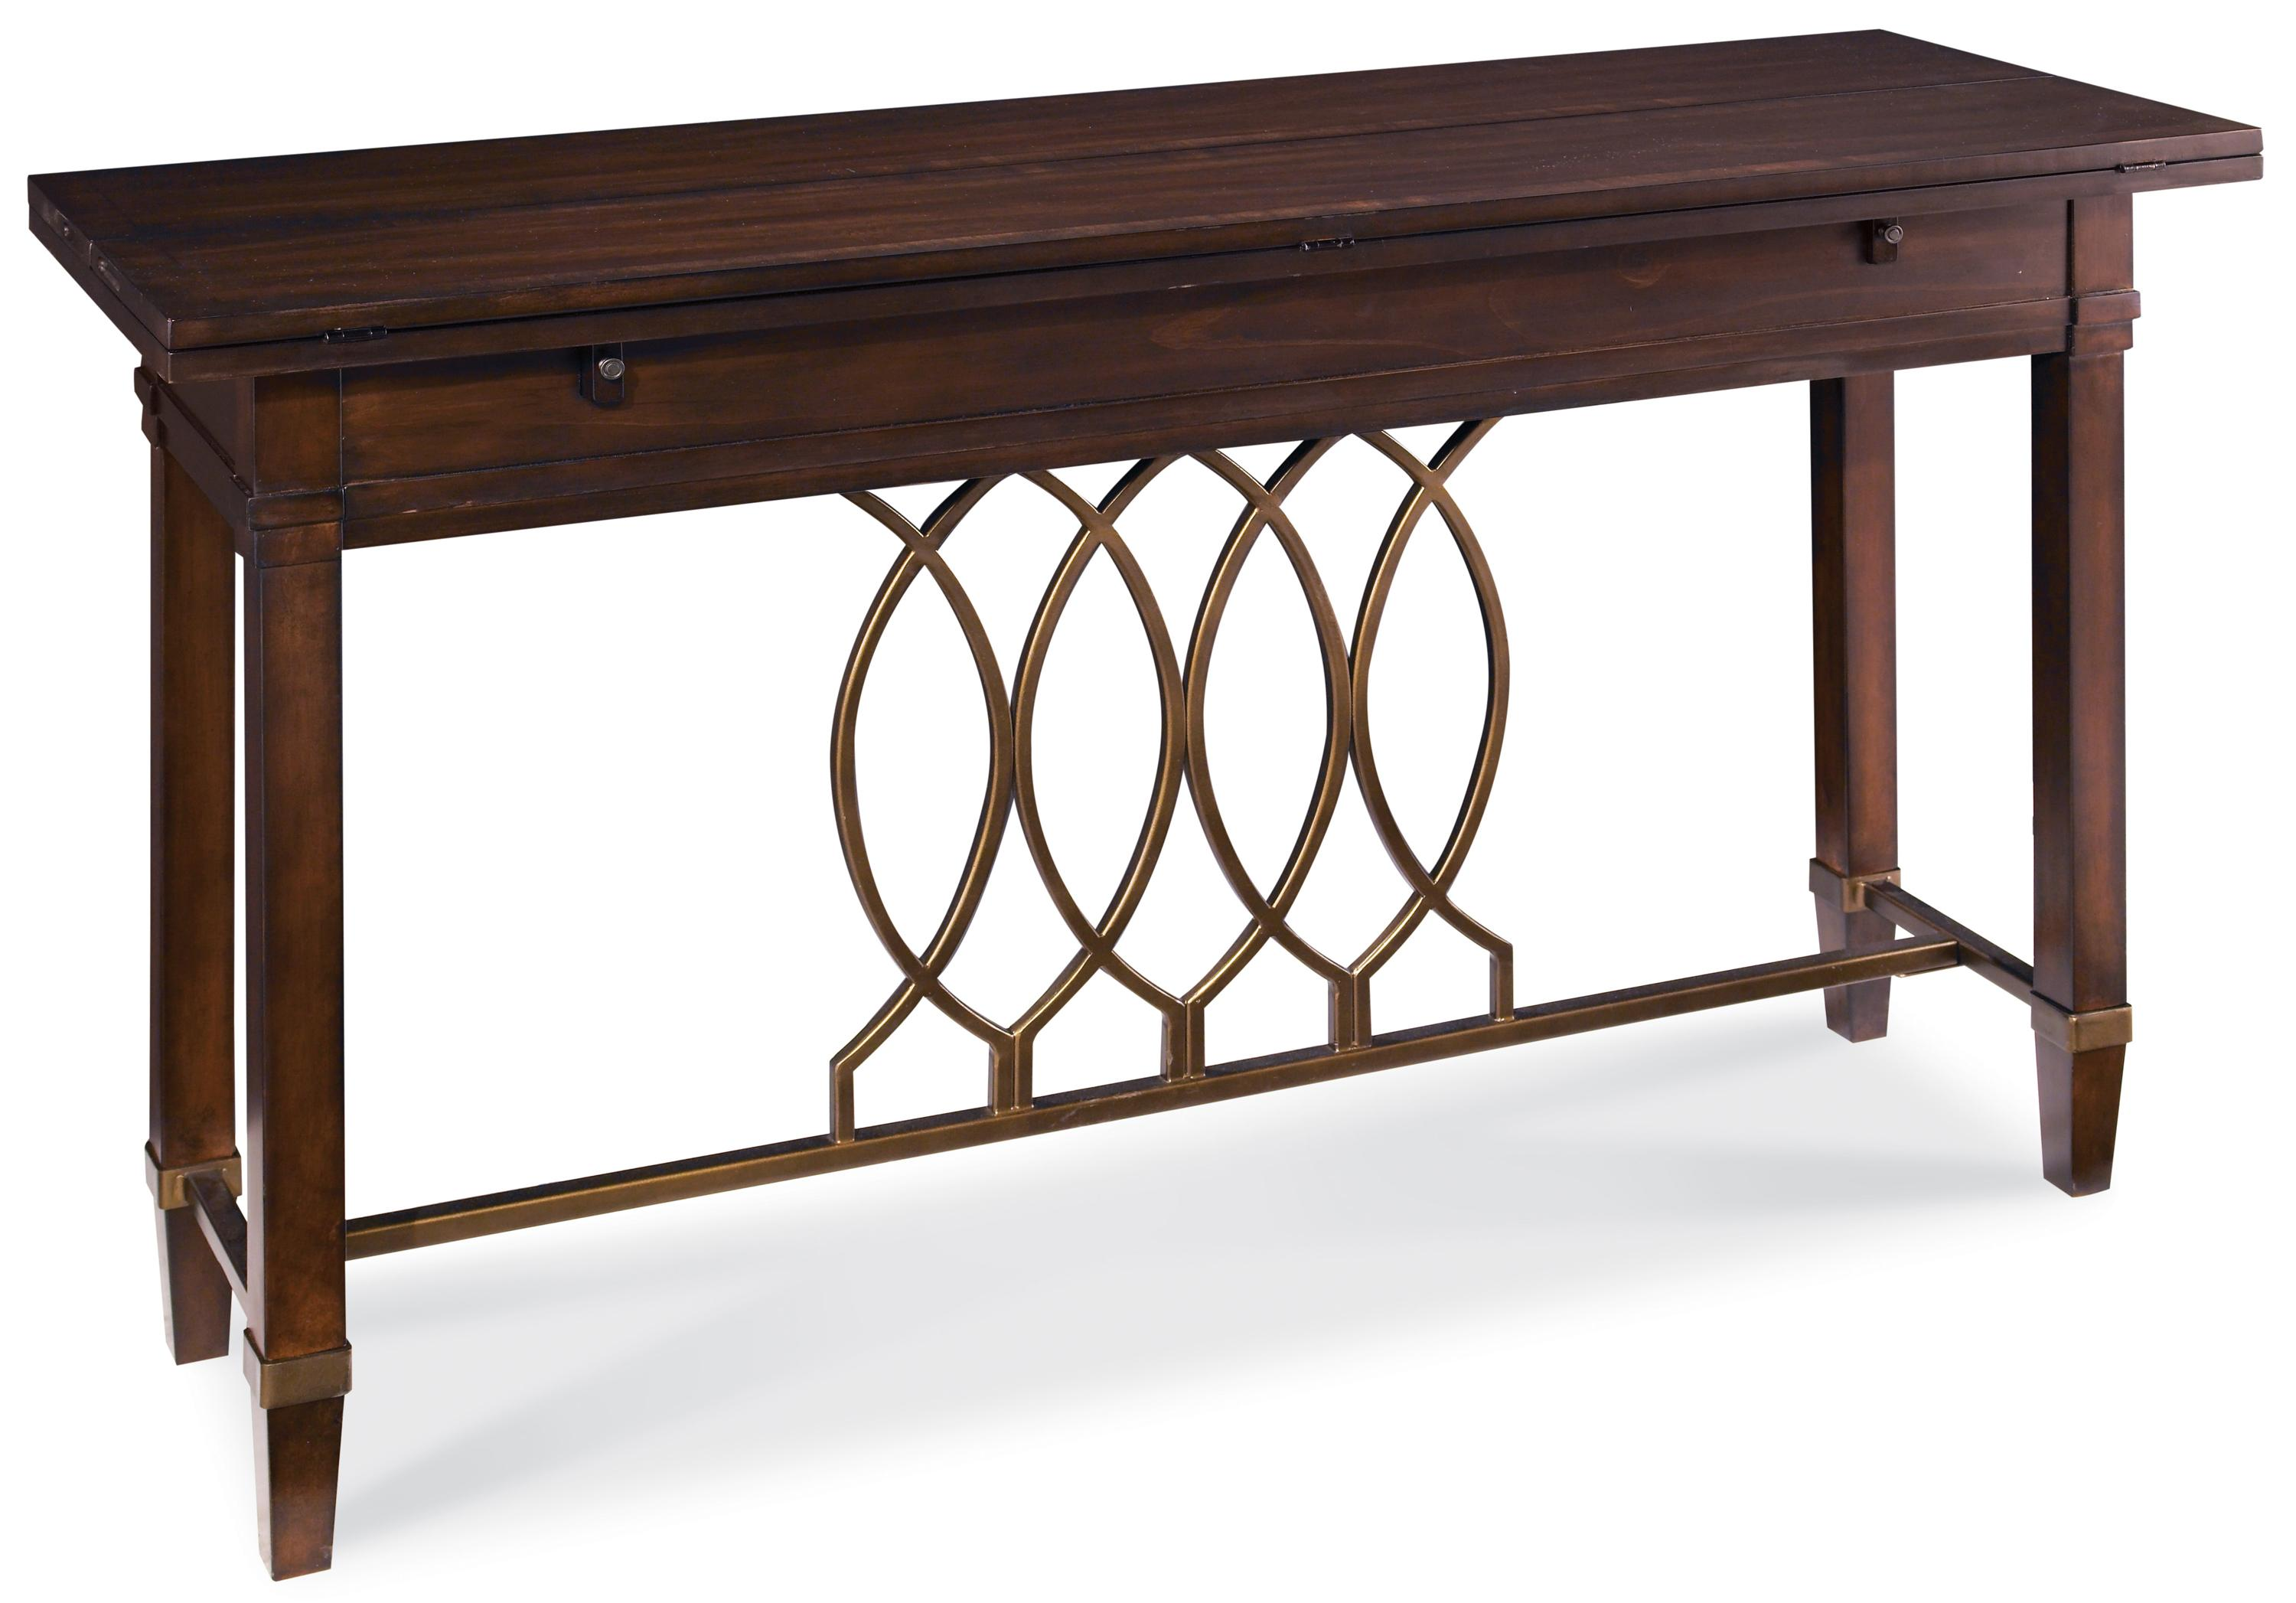 Belfort Signature Bolbrook Flip Top Sofa Table - Item Number: 61307-2636